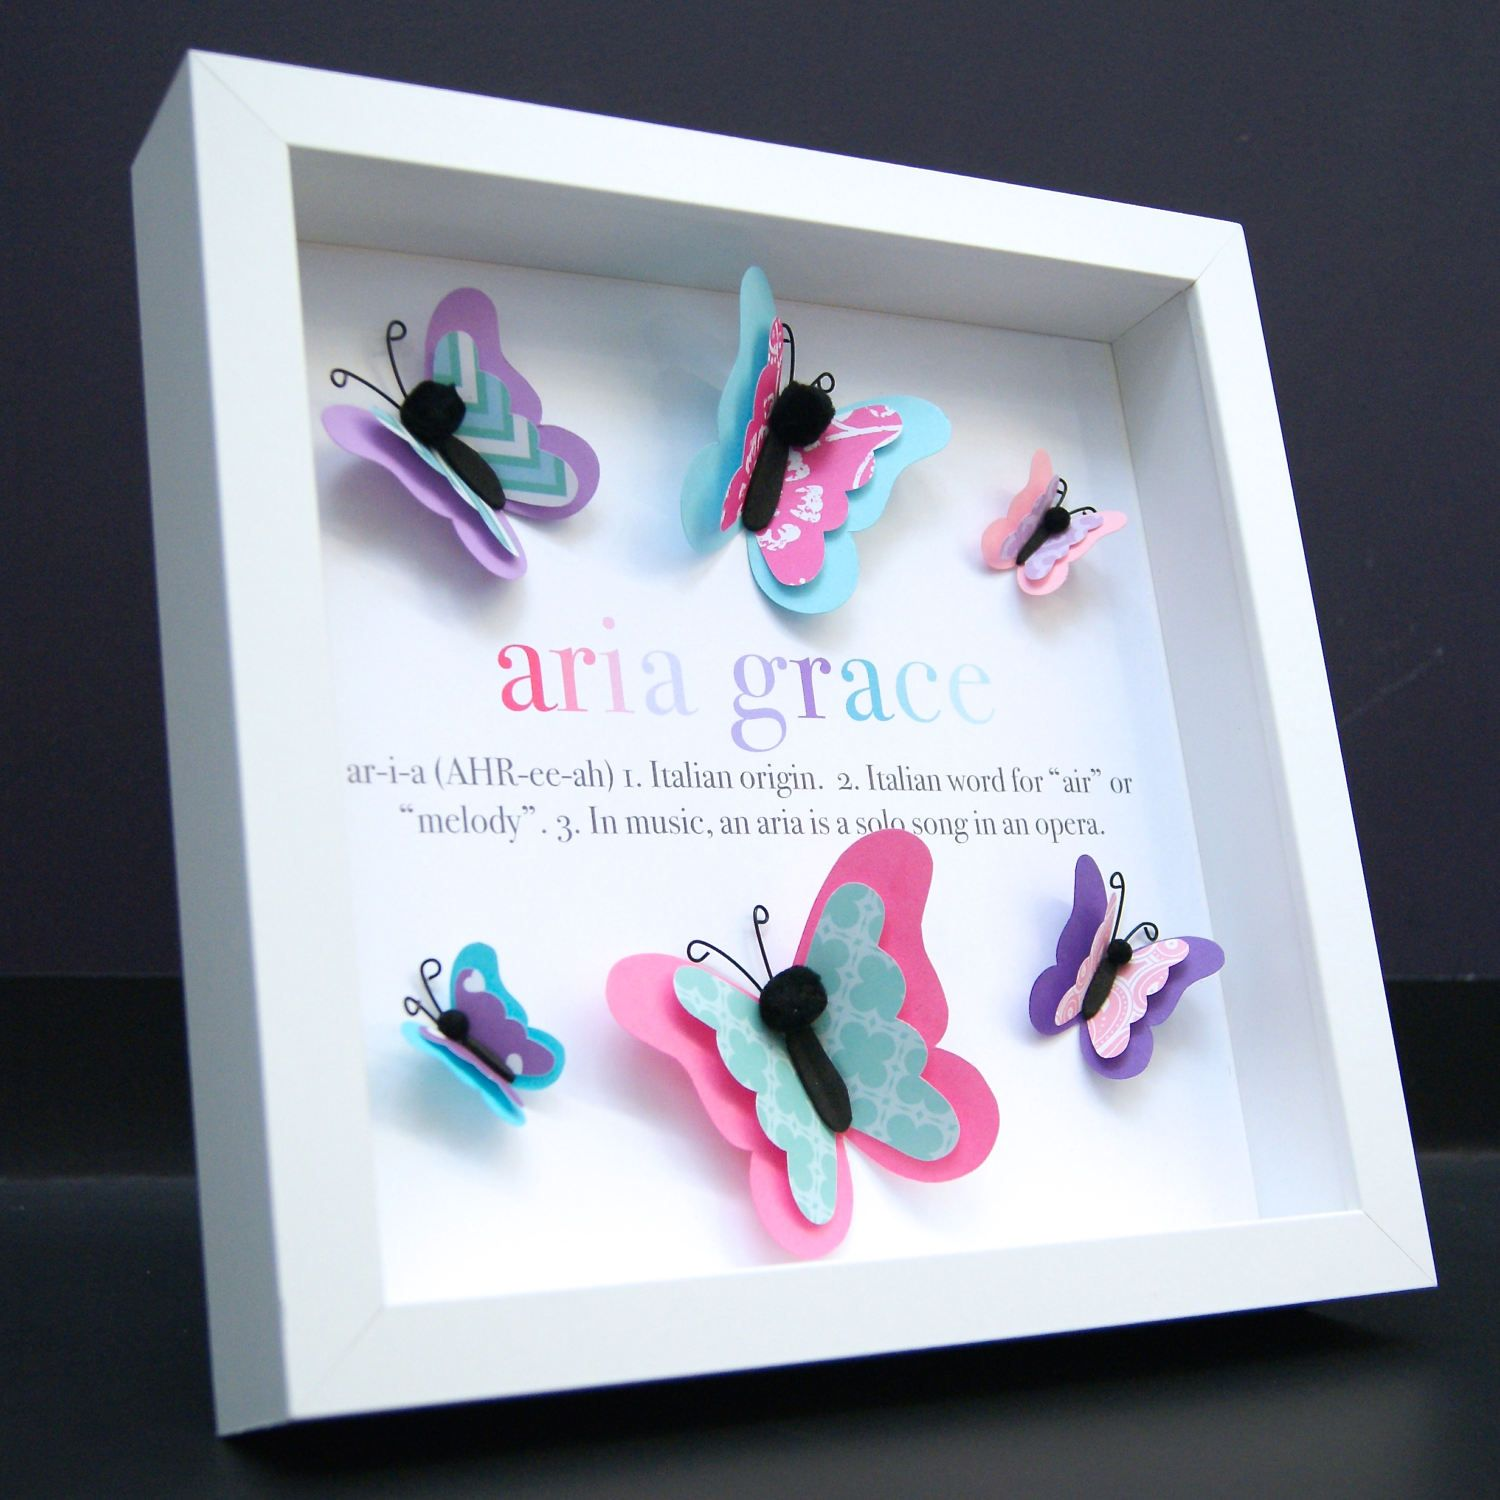 Personalized name origin and meaning 3d paper butterflies shadowbox personalized name origin and meaning 3d paper butterflies shadowbox frame custom art newborn baby girl shower nursery decor wall art gift negle Image collections